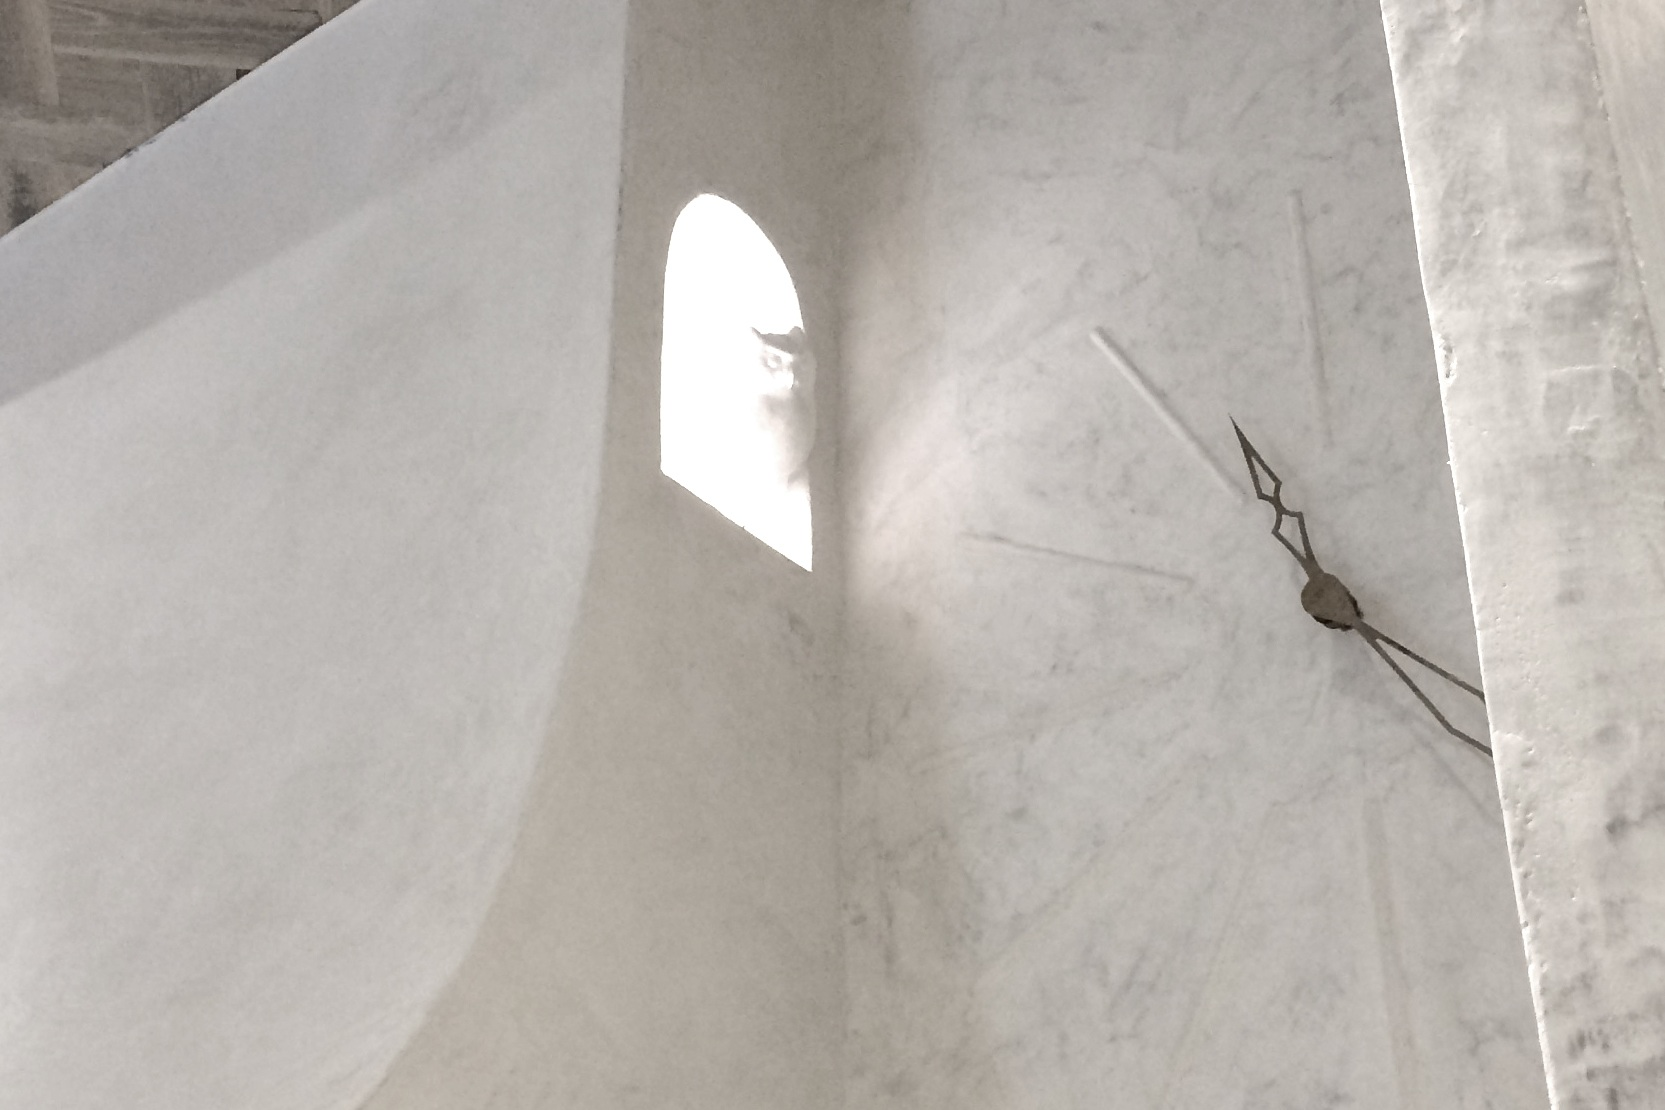 Project: Limestone wall application and clock